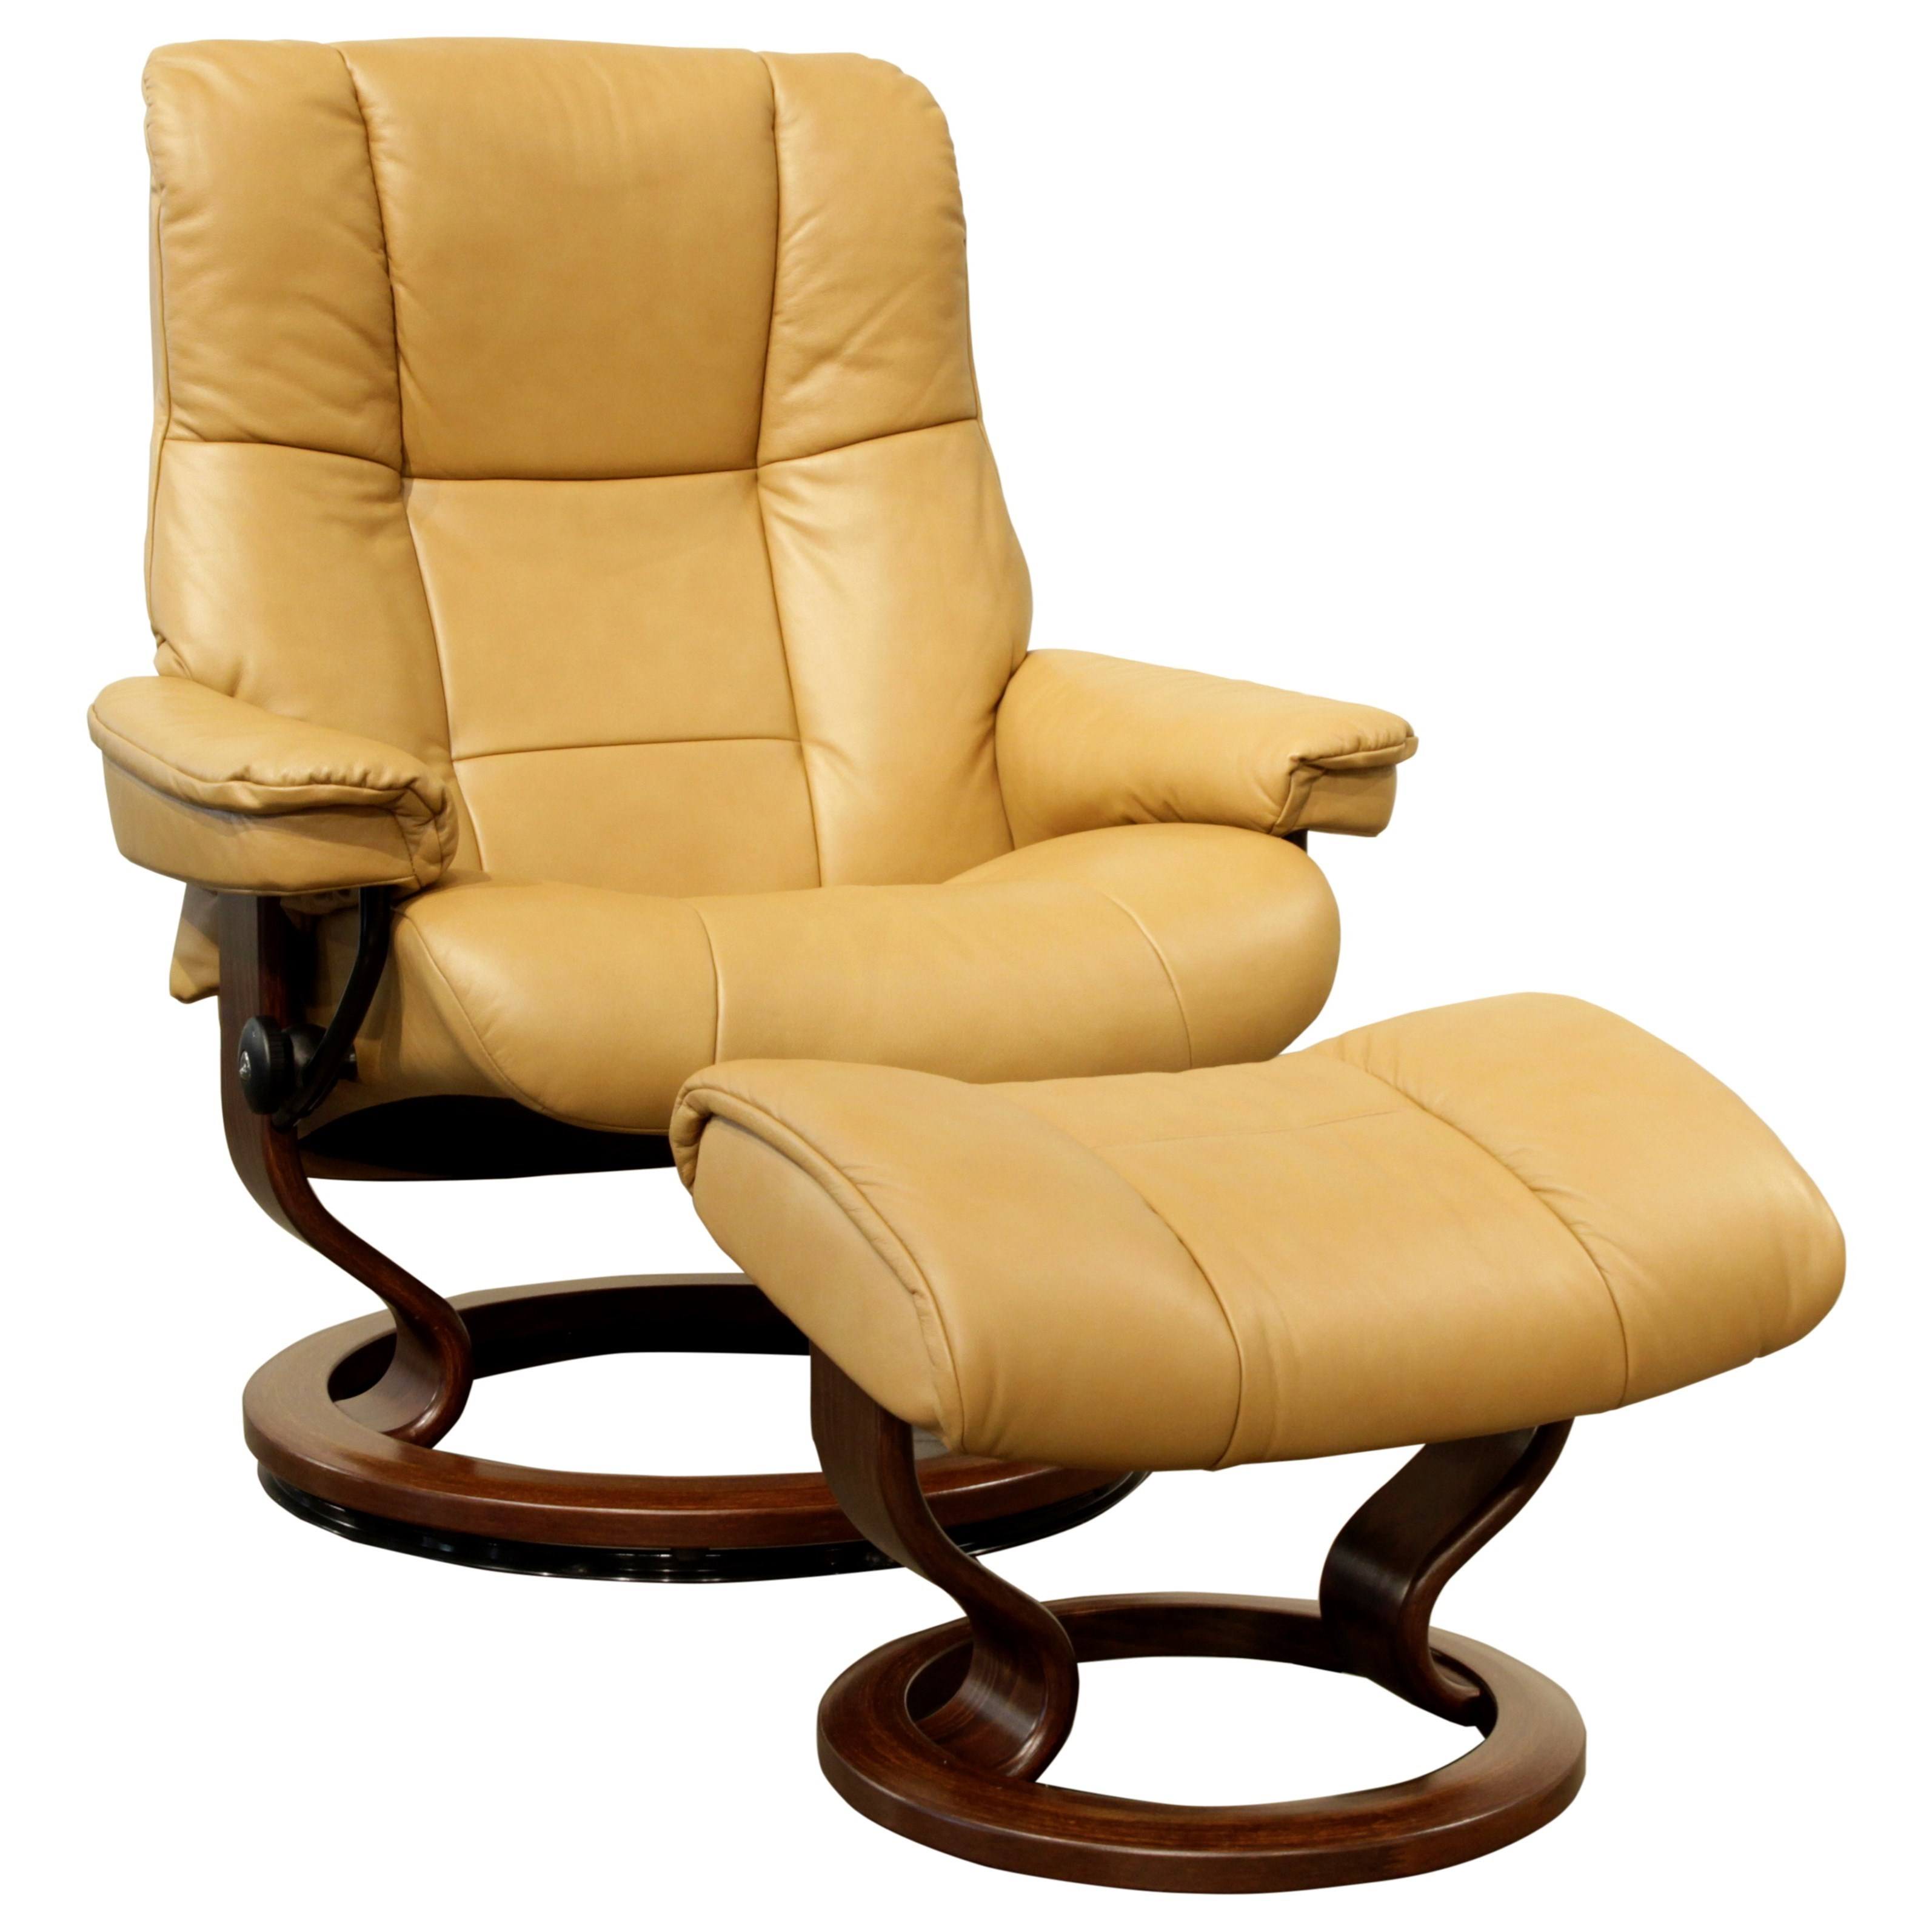 Stressless Recliners With Ottoman Stressless Mayfair Large Stressless Chair And Ottoman